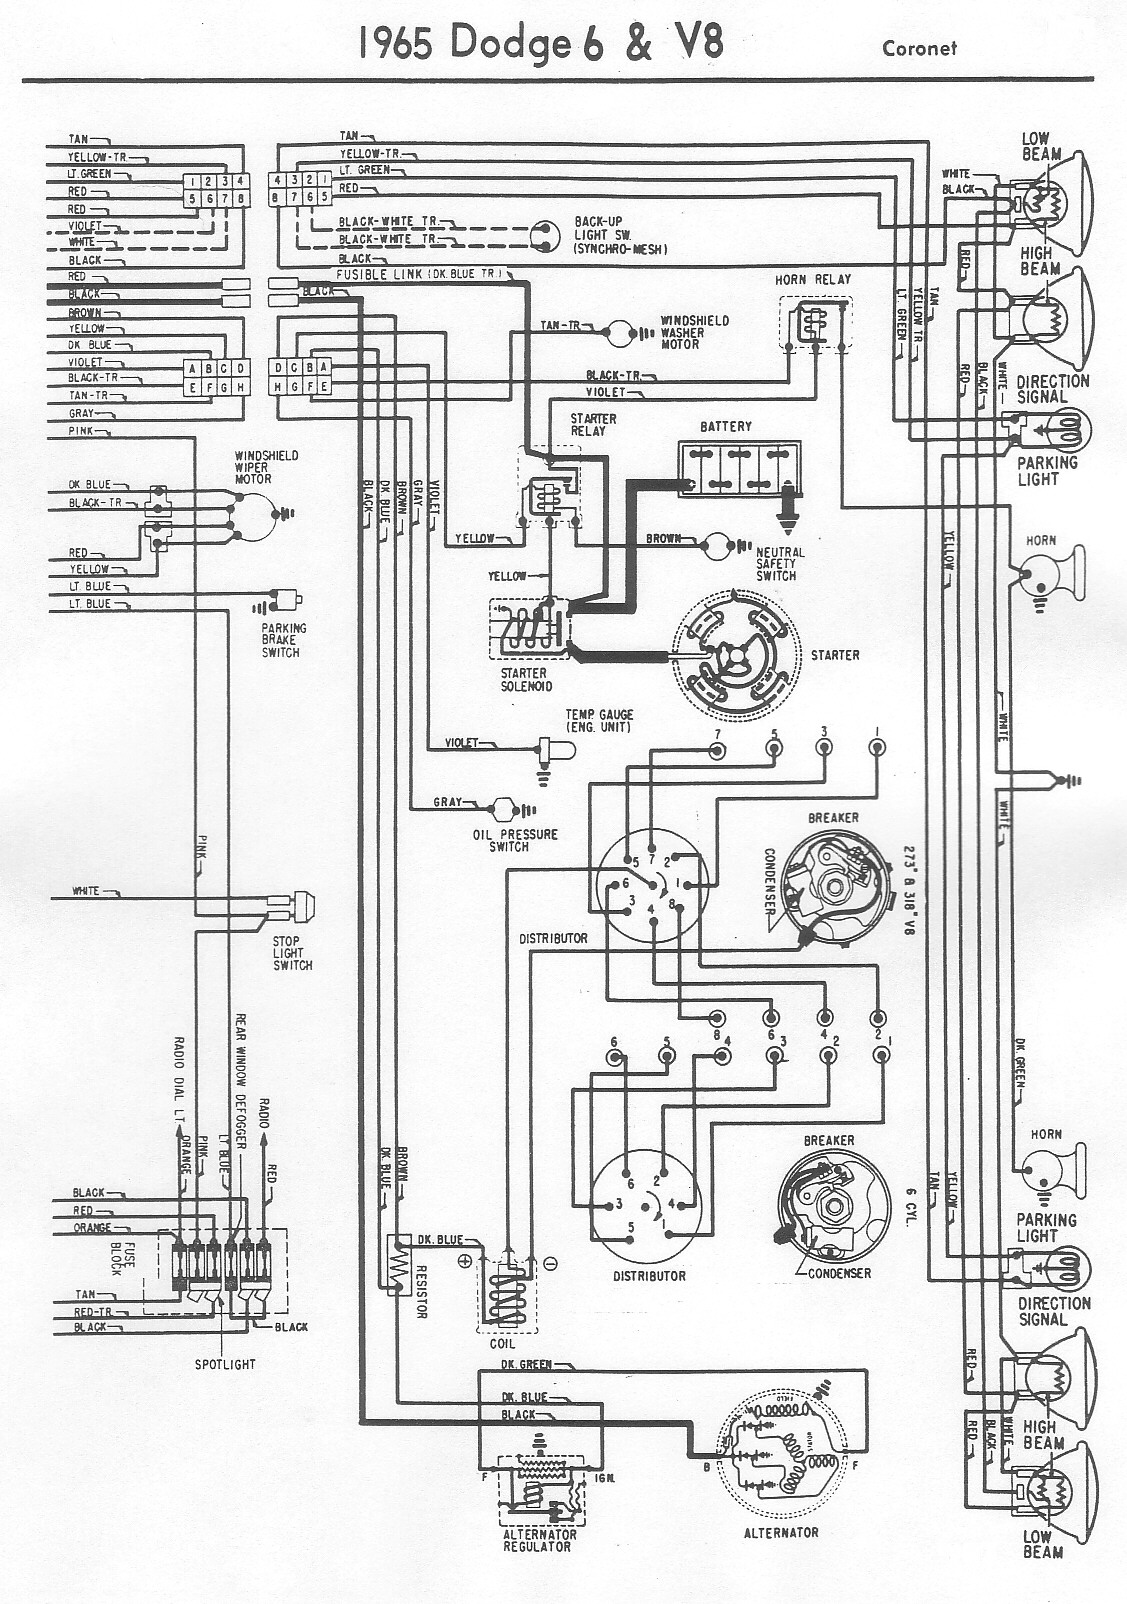 Gm Wiper Wiring Diagram Schemes Com